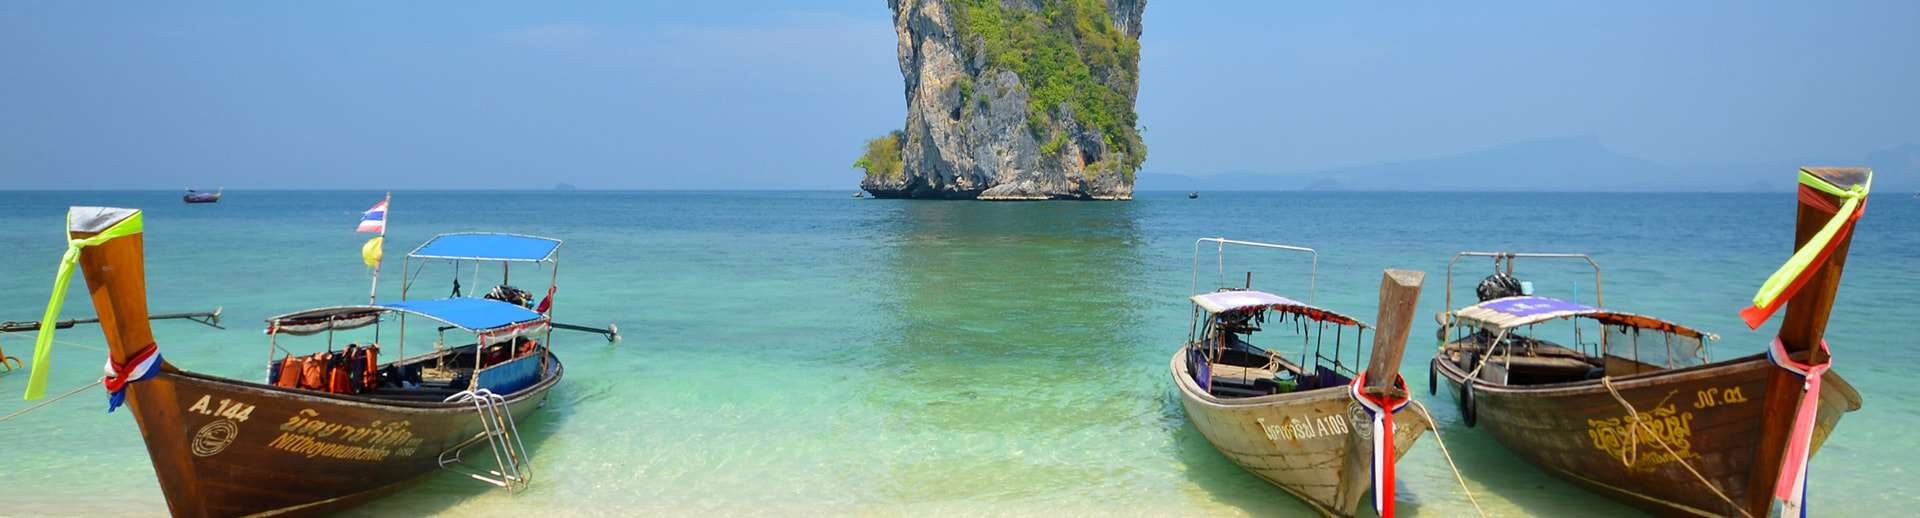 snorkeling day tour krabi